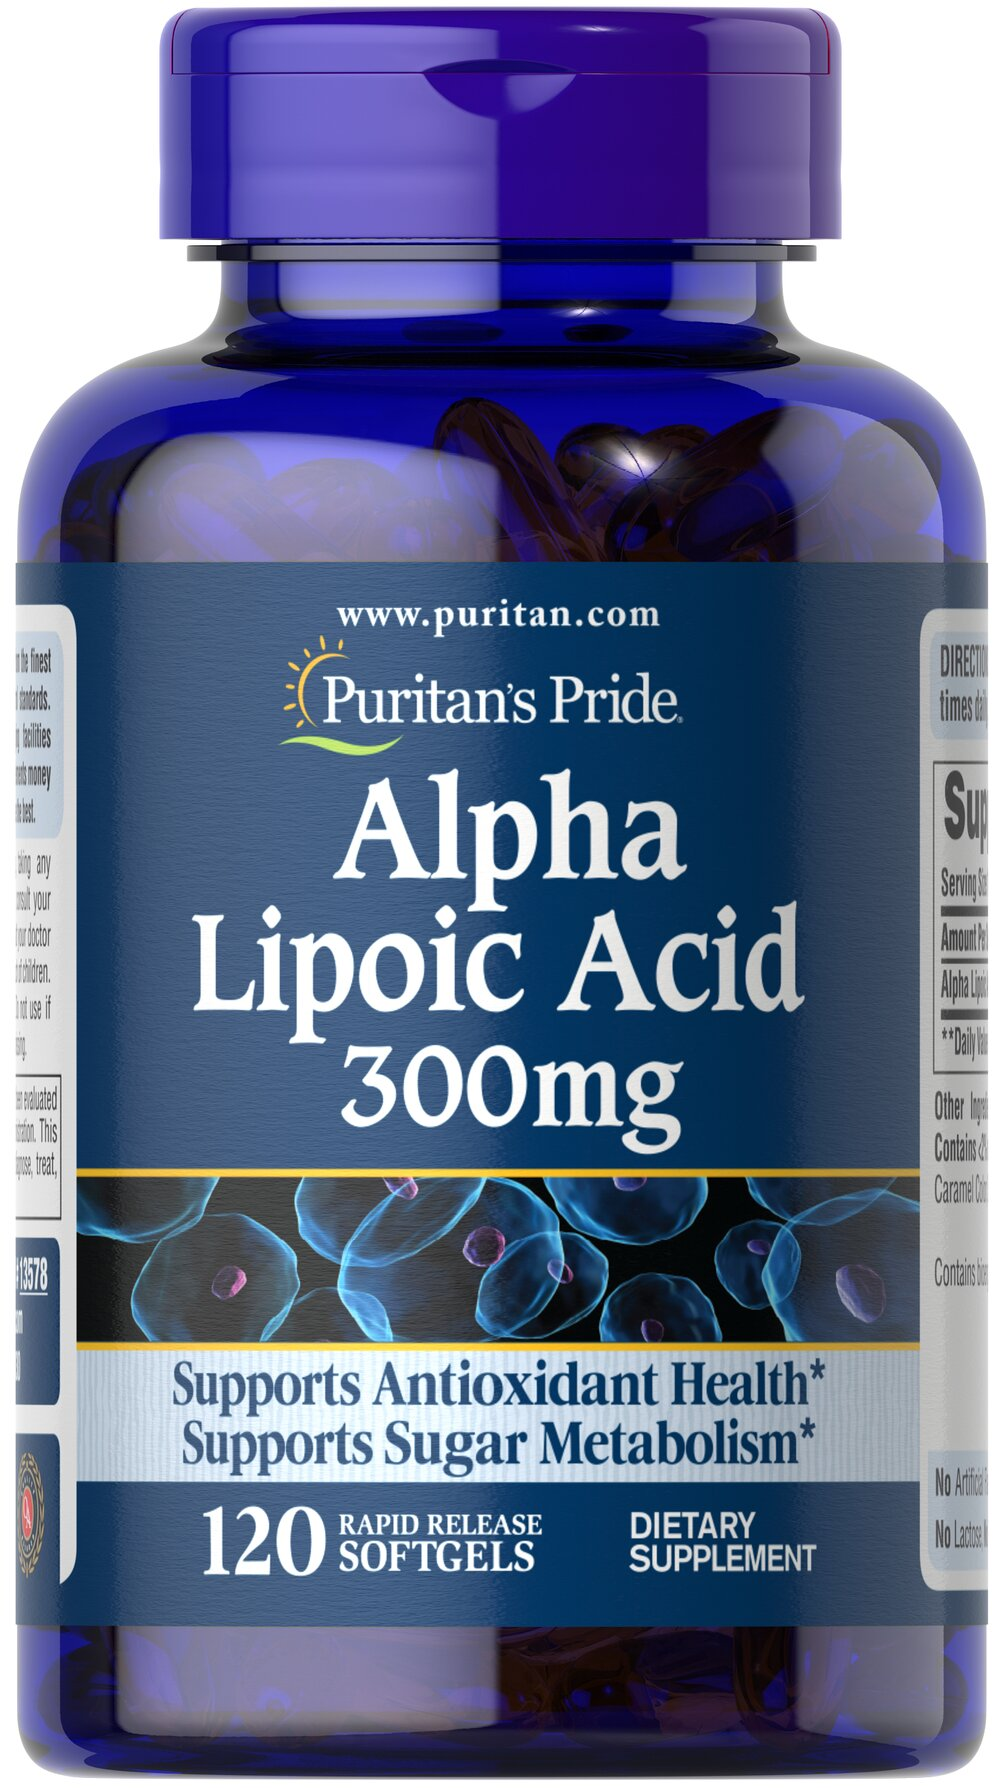 "Alpha Lipoic Acid 300 mg <p>Alpha Lipoic Acid (ALA) helps metabolize sugar, especially in muscles, where it promotes energy.**</p><p>ALA is also beneficial for liver health, and helps to revitalize the underlying structure of the skin so it can look healthier and more radiant.**</p><p> ALA is often called the ""universal antioxidant"" for its ability to help neutralize cell-damaging free radicals.** </p> 120 Softgels 300 mg $27.99"